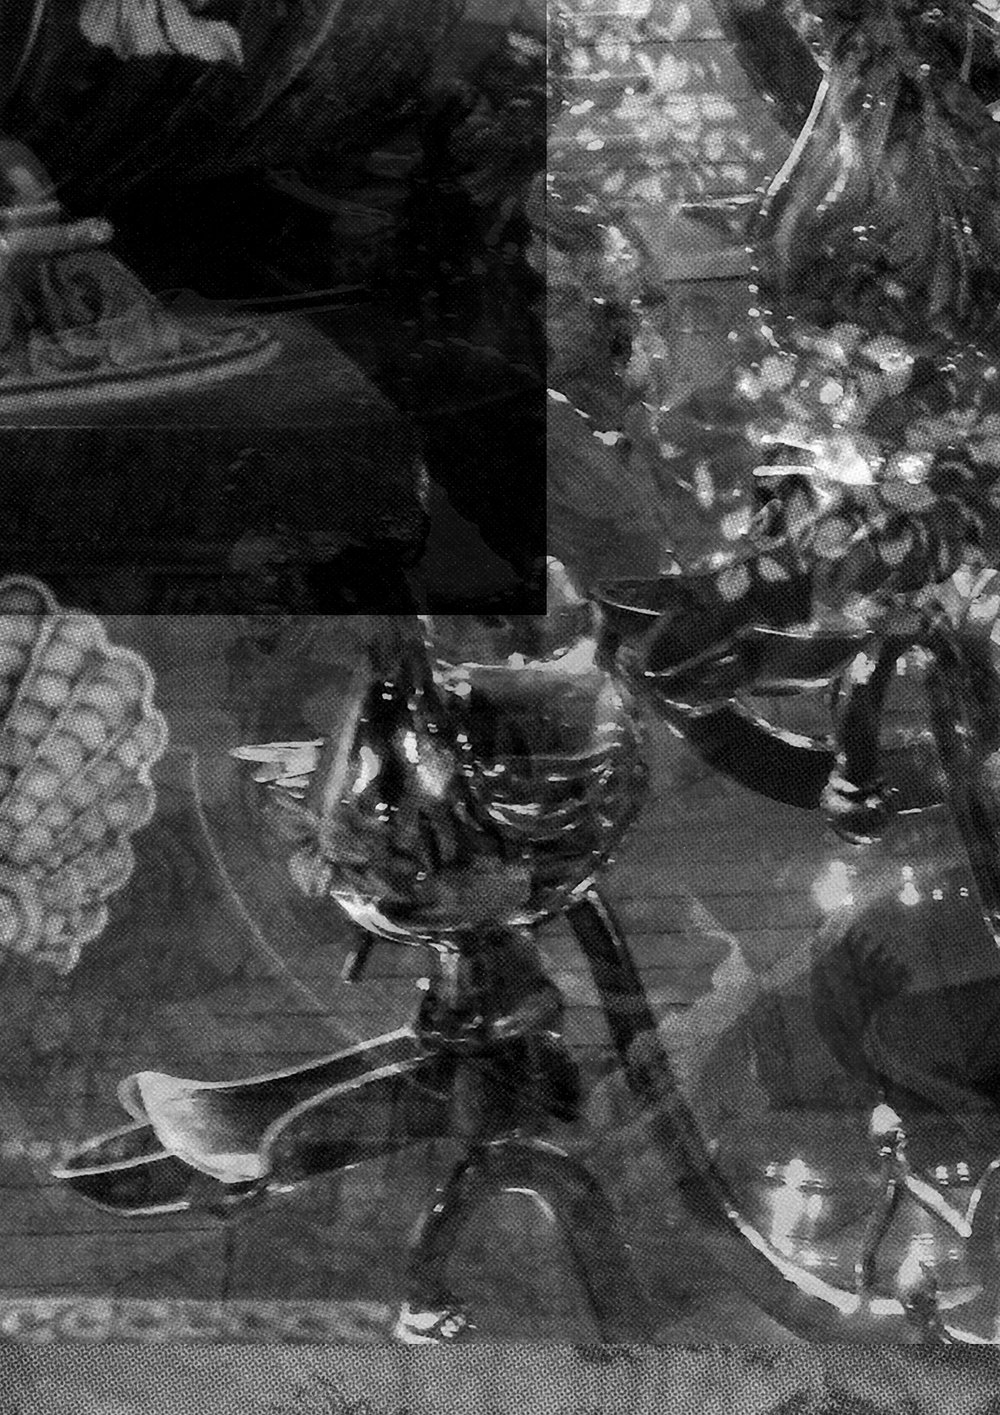 Tables Decorated with Birdcages Filled with Flowers and Feathers (Detail)